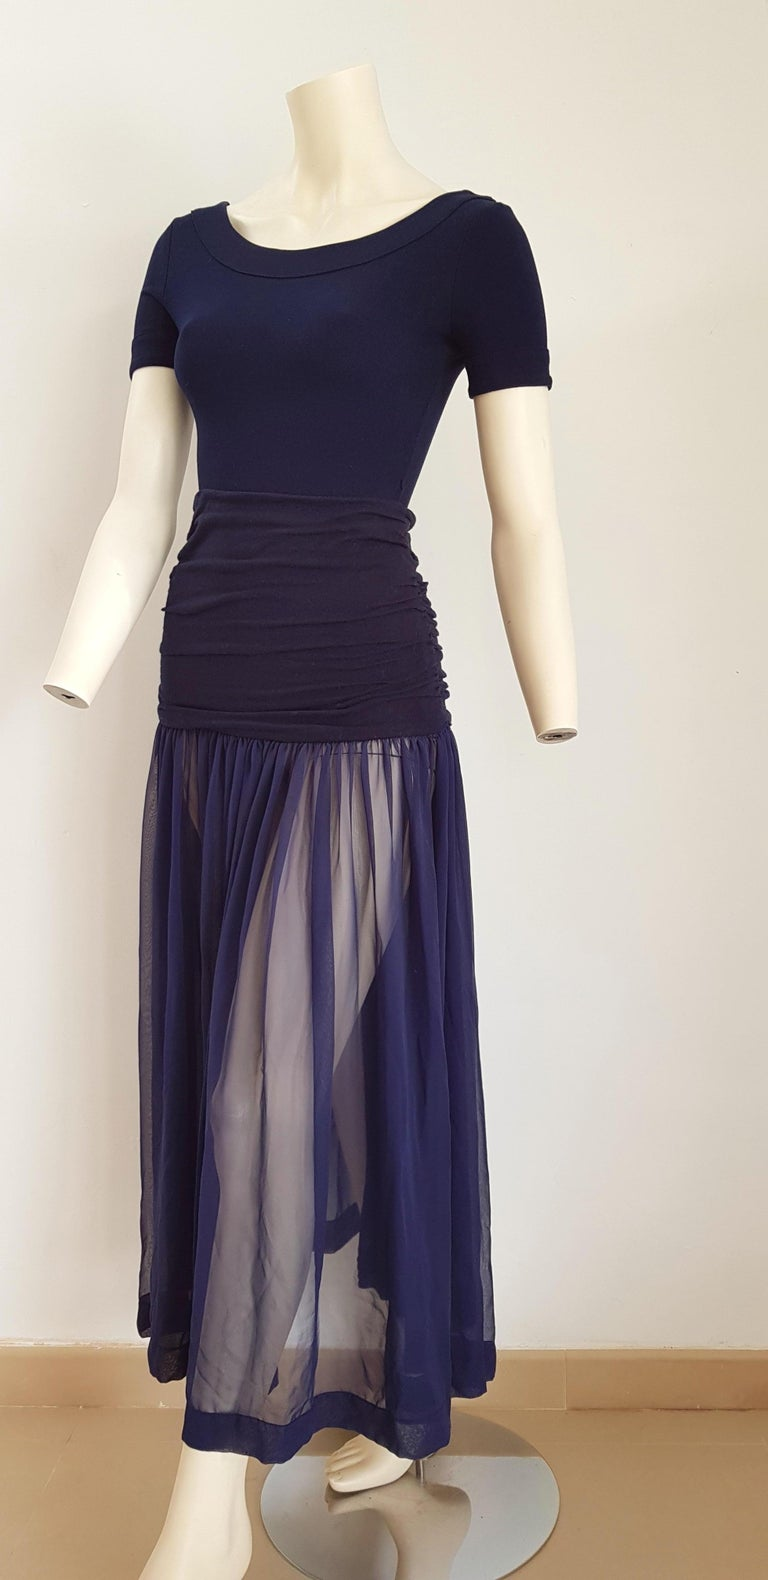 Isabelle ALLARD Paris, body, chiffon skirt, pleated black waistband, blue silk cotton Dress. Created in the Couture atelier of the Rue Saint Honoré Paris - Unworn, New.  Isabelle ALLARD is a Paris brand that created only haute couture and selling to